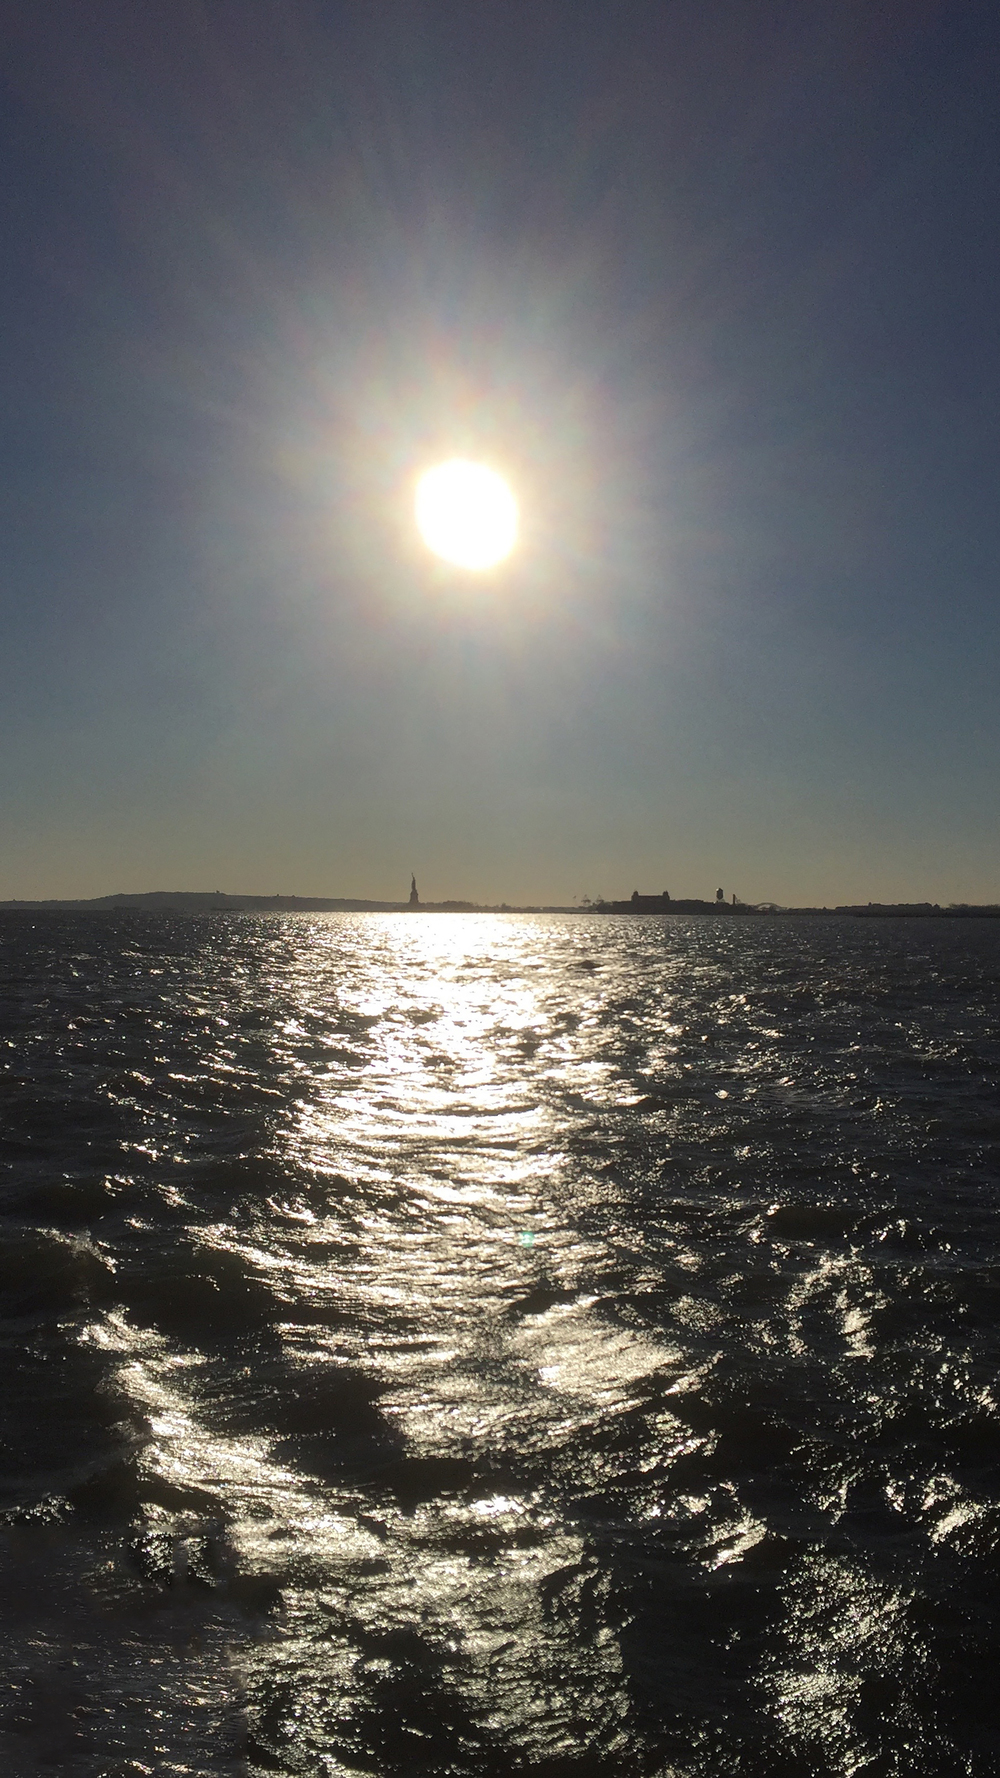 The Statue of Liberty blocks out the afternoon winter sun on the Hudson River, on a cold day - January 4, 2016